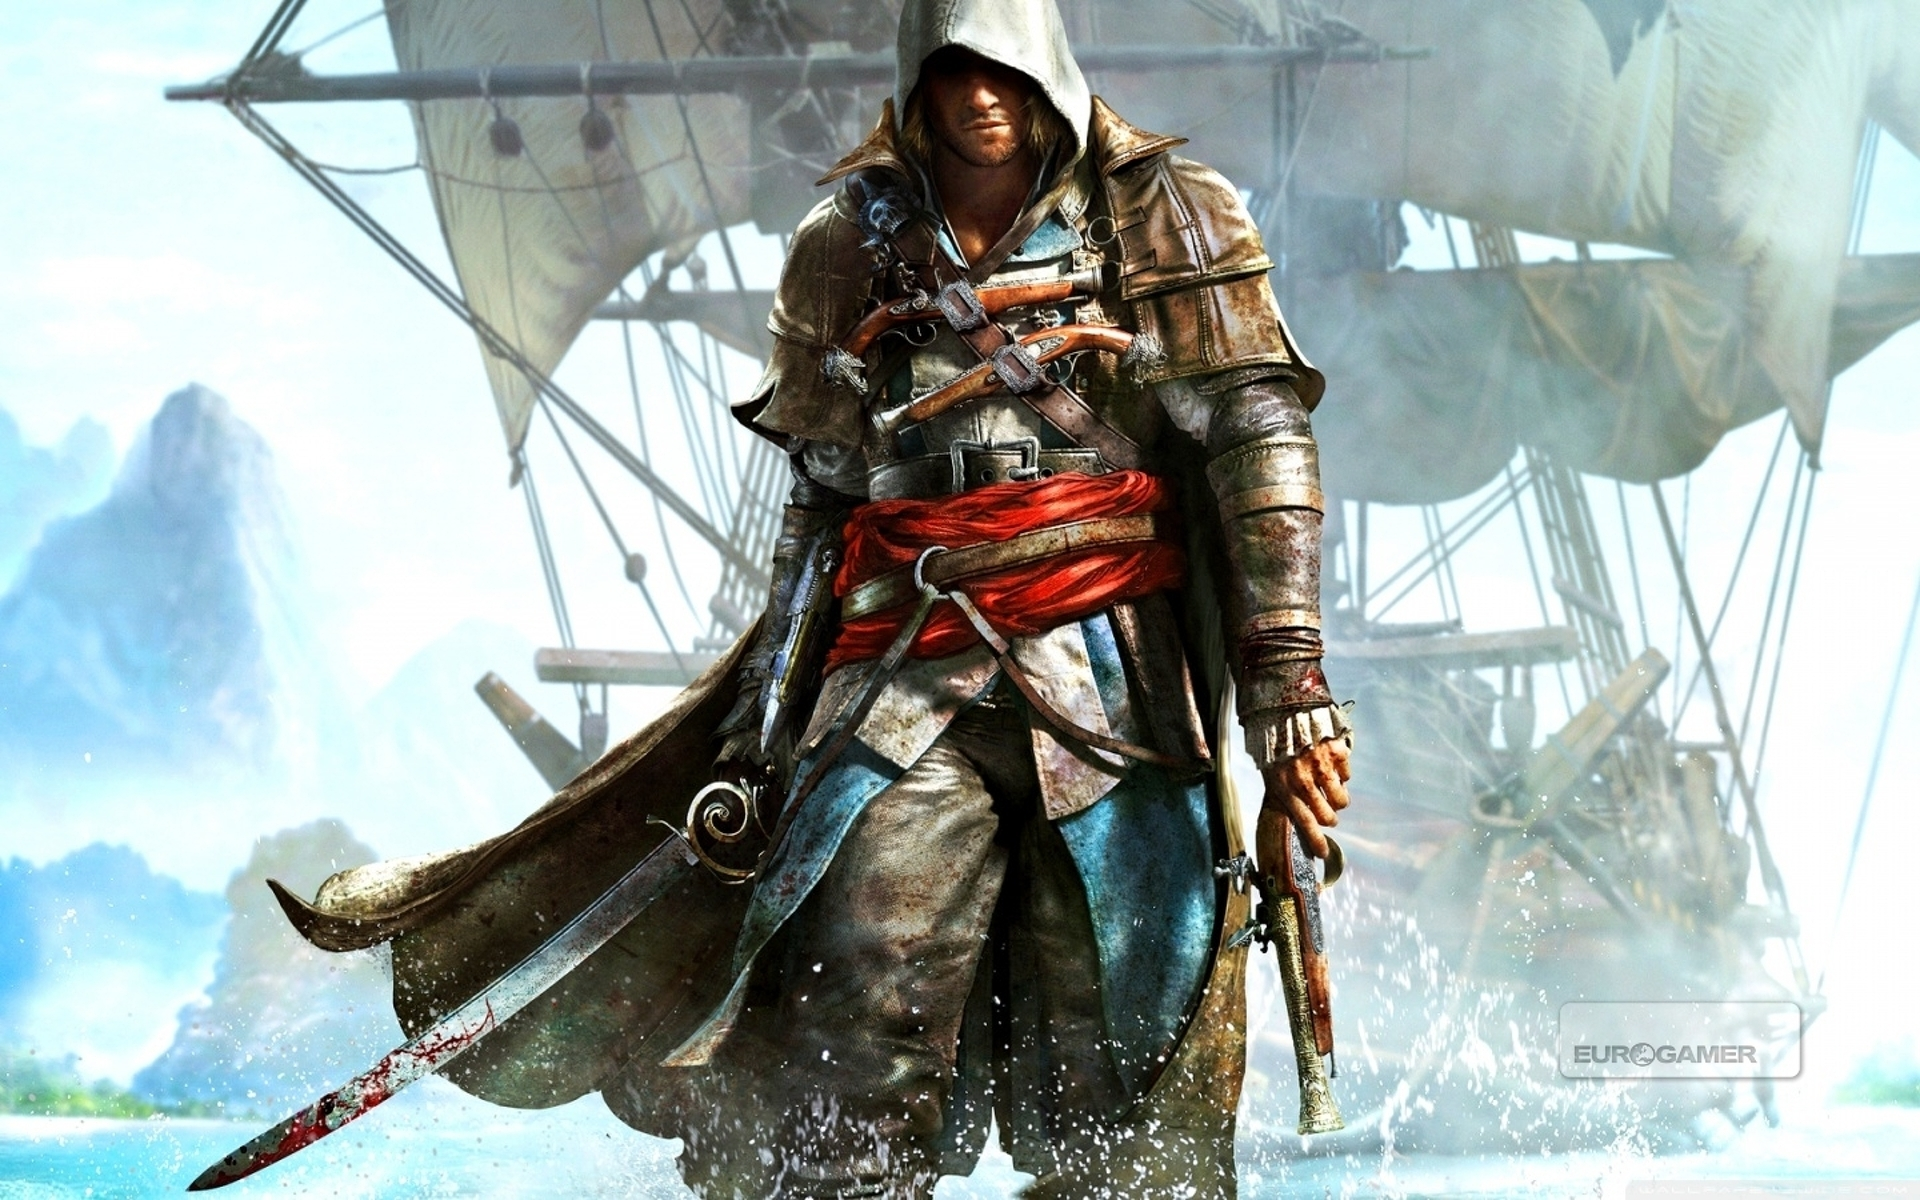 fond-ecran-assassins-creed-iv-black-flag